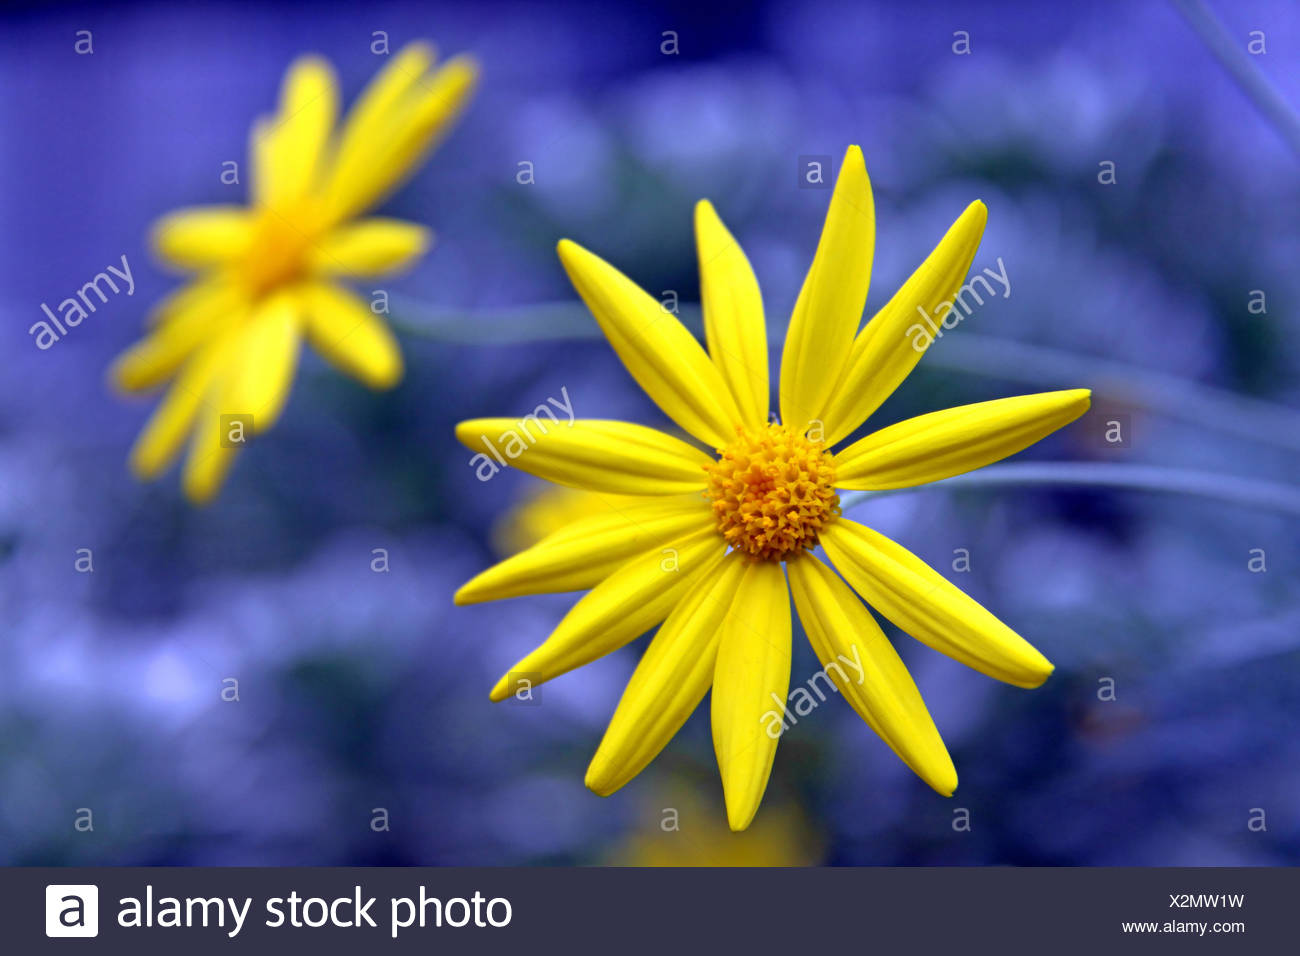 Blue Colour Contrast Yellow Blue Flower Plant Blossoms South Africa